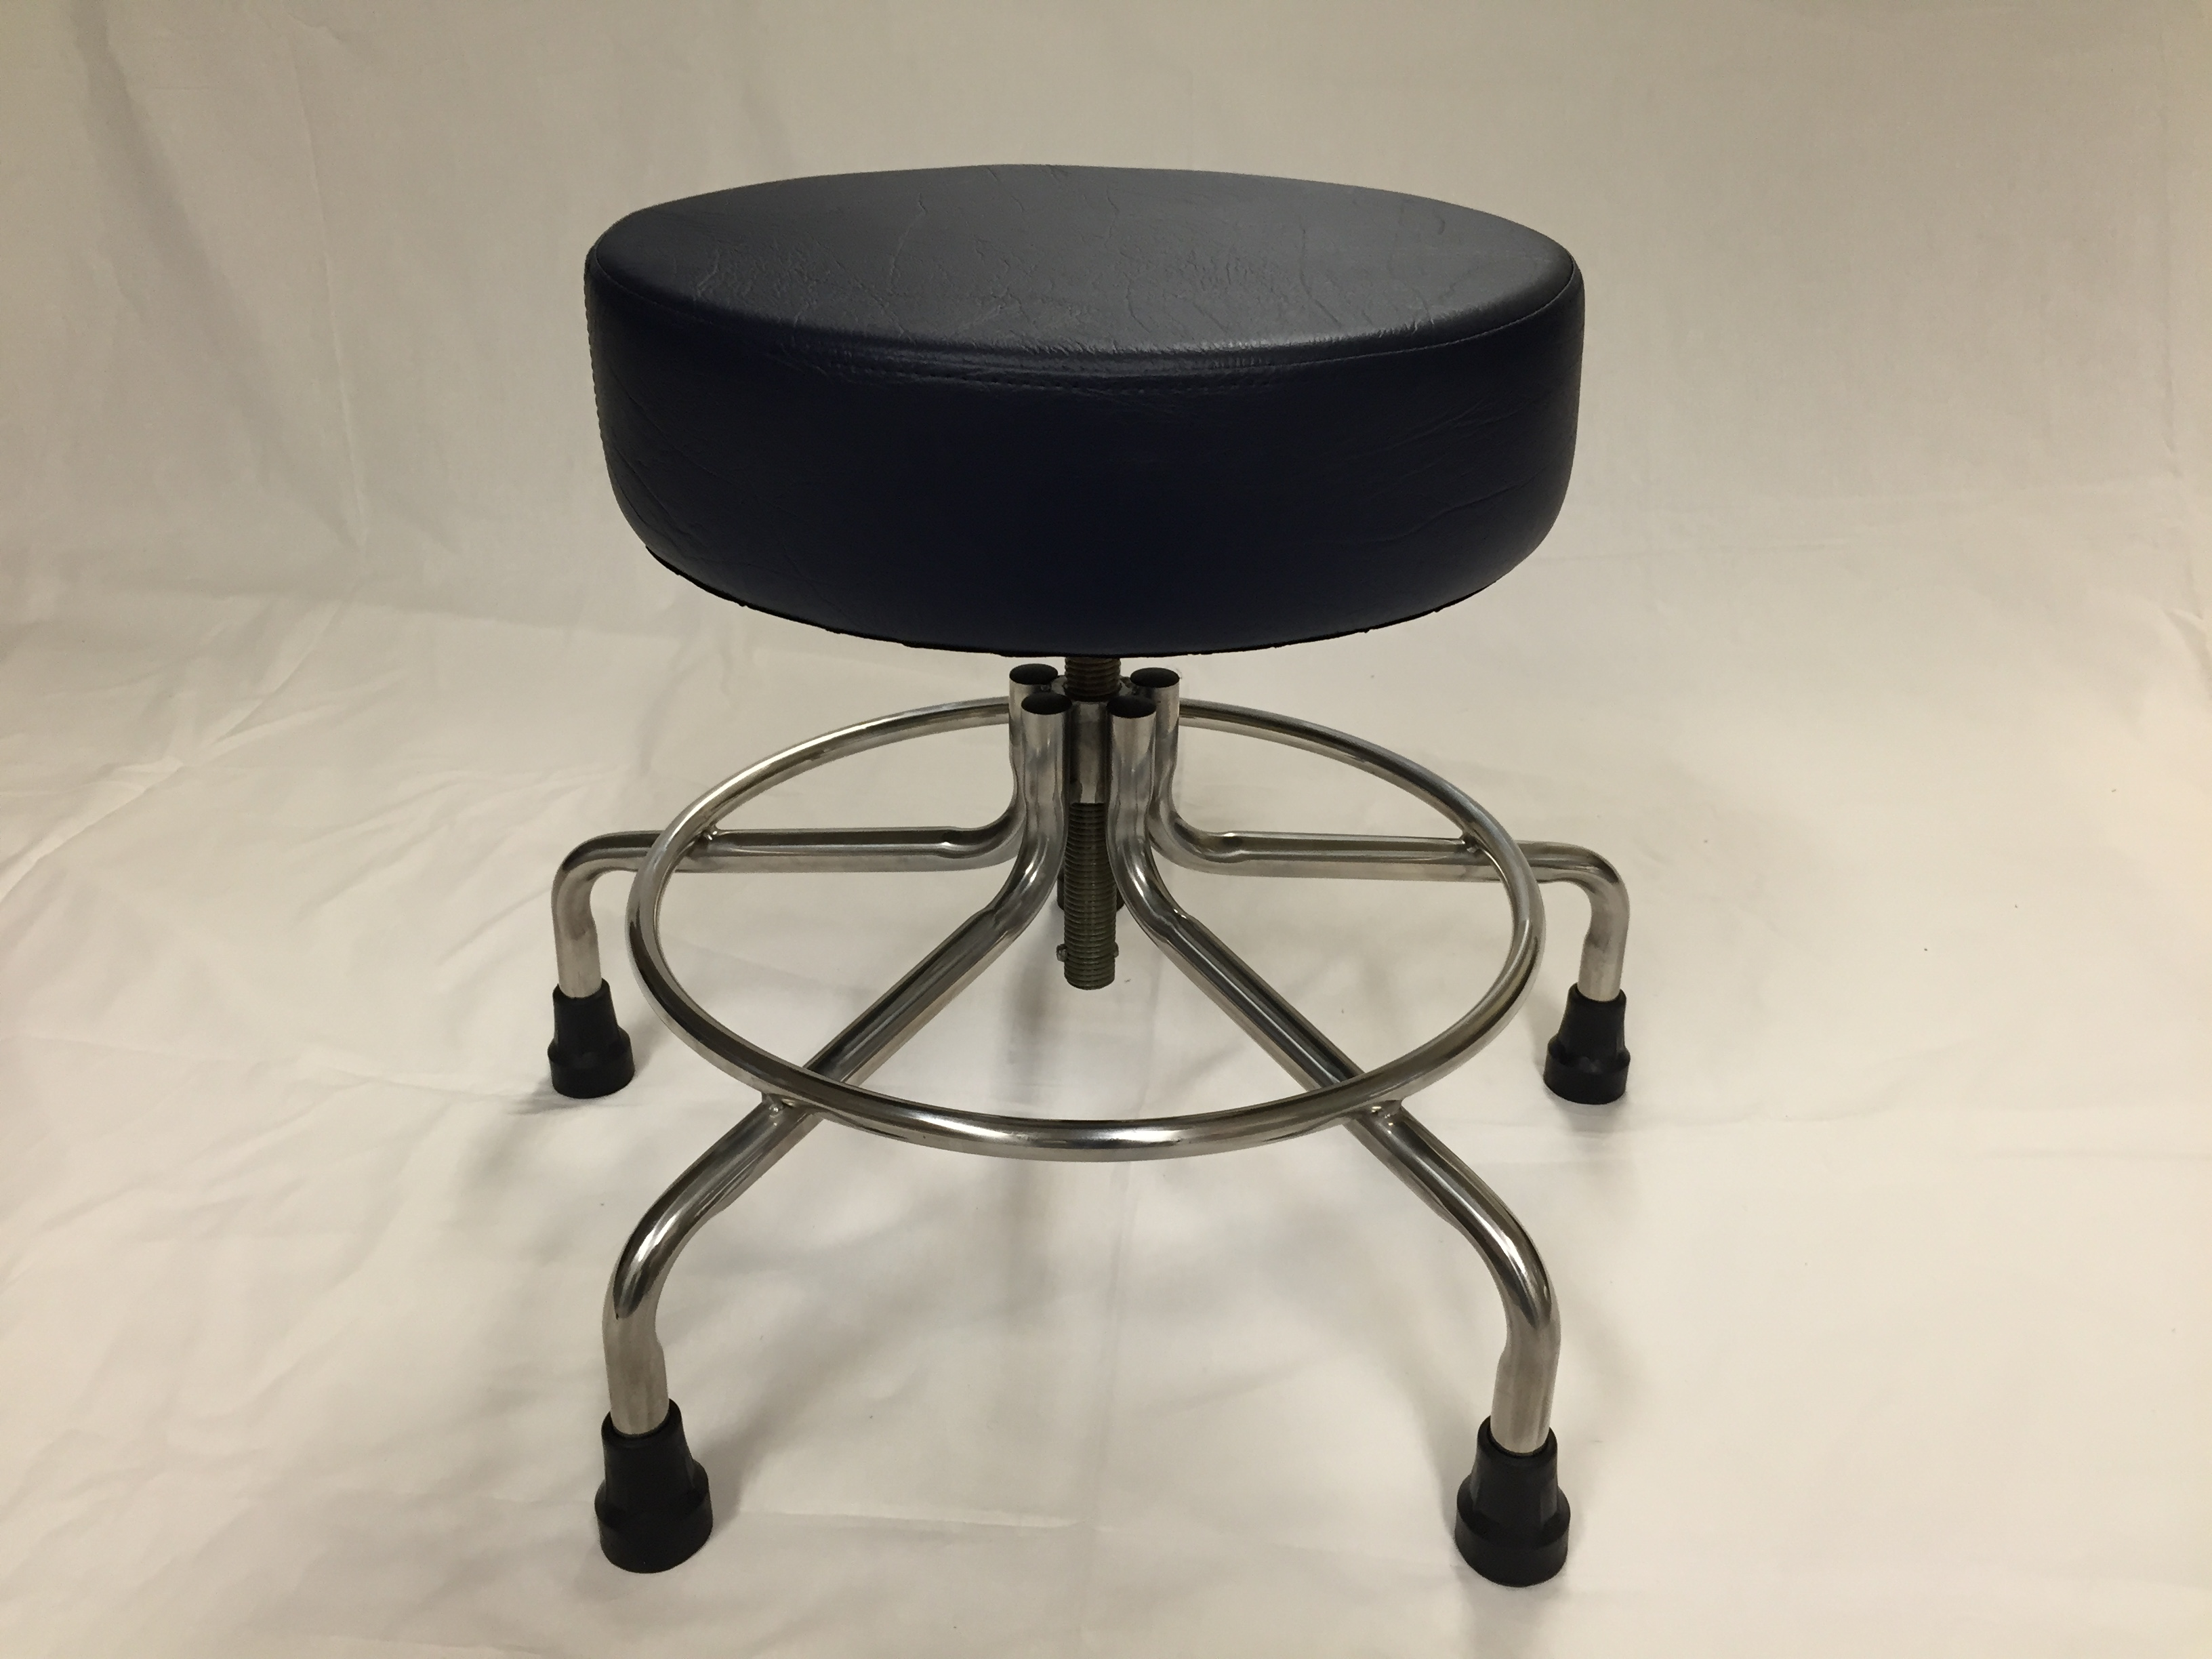 DC 102 MR Adj Doctors Stool 21 27quot wRubber Tips MRI  : DC 102 from www.mrimed.com size 3264 x 2448 jpeg 1194kB